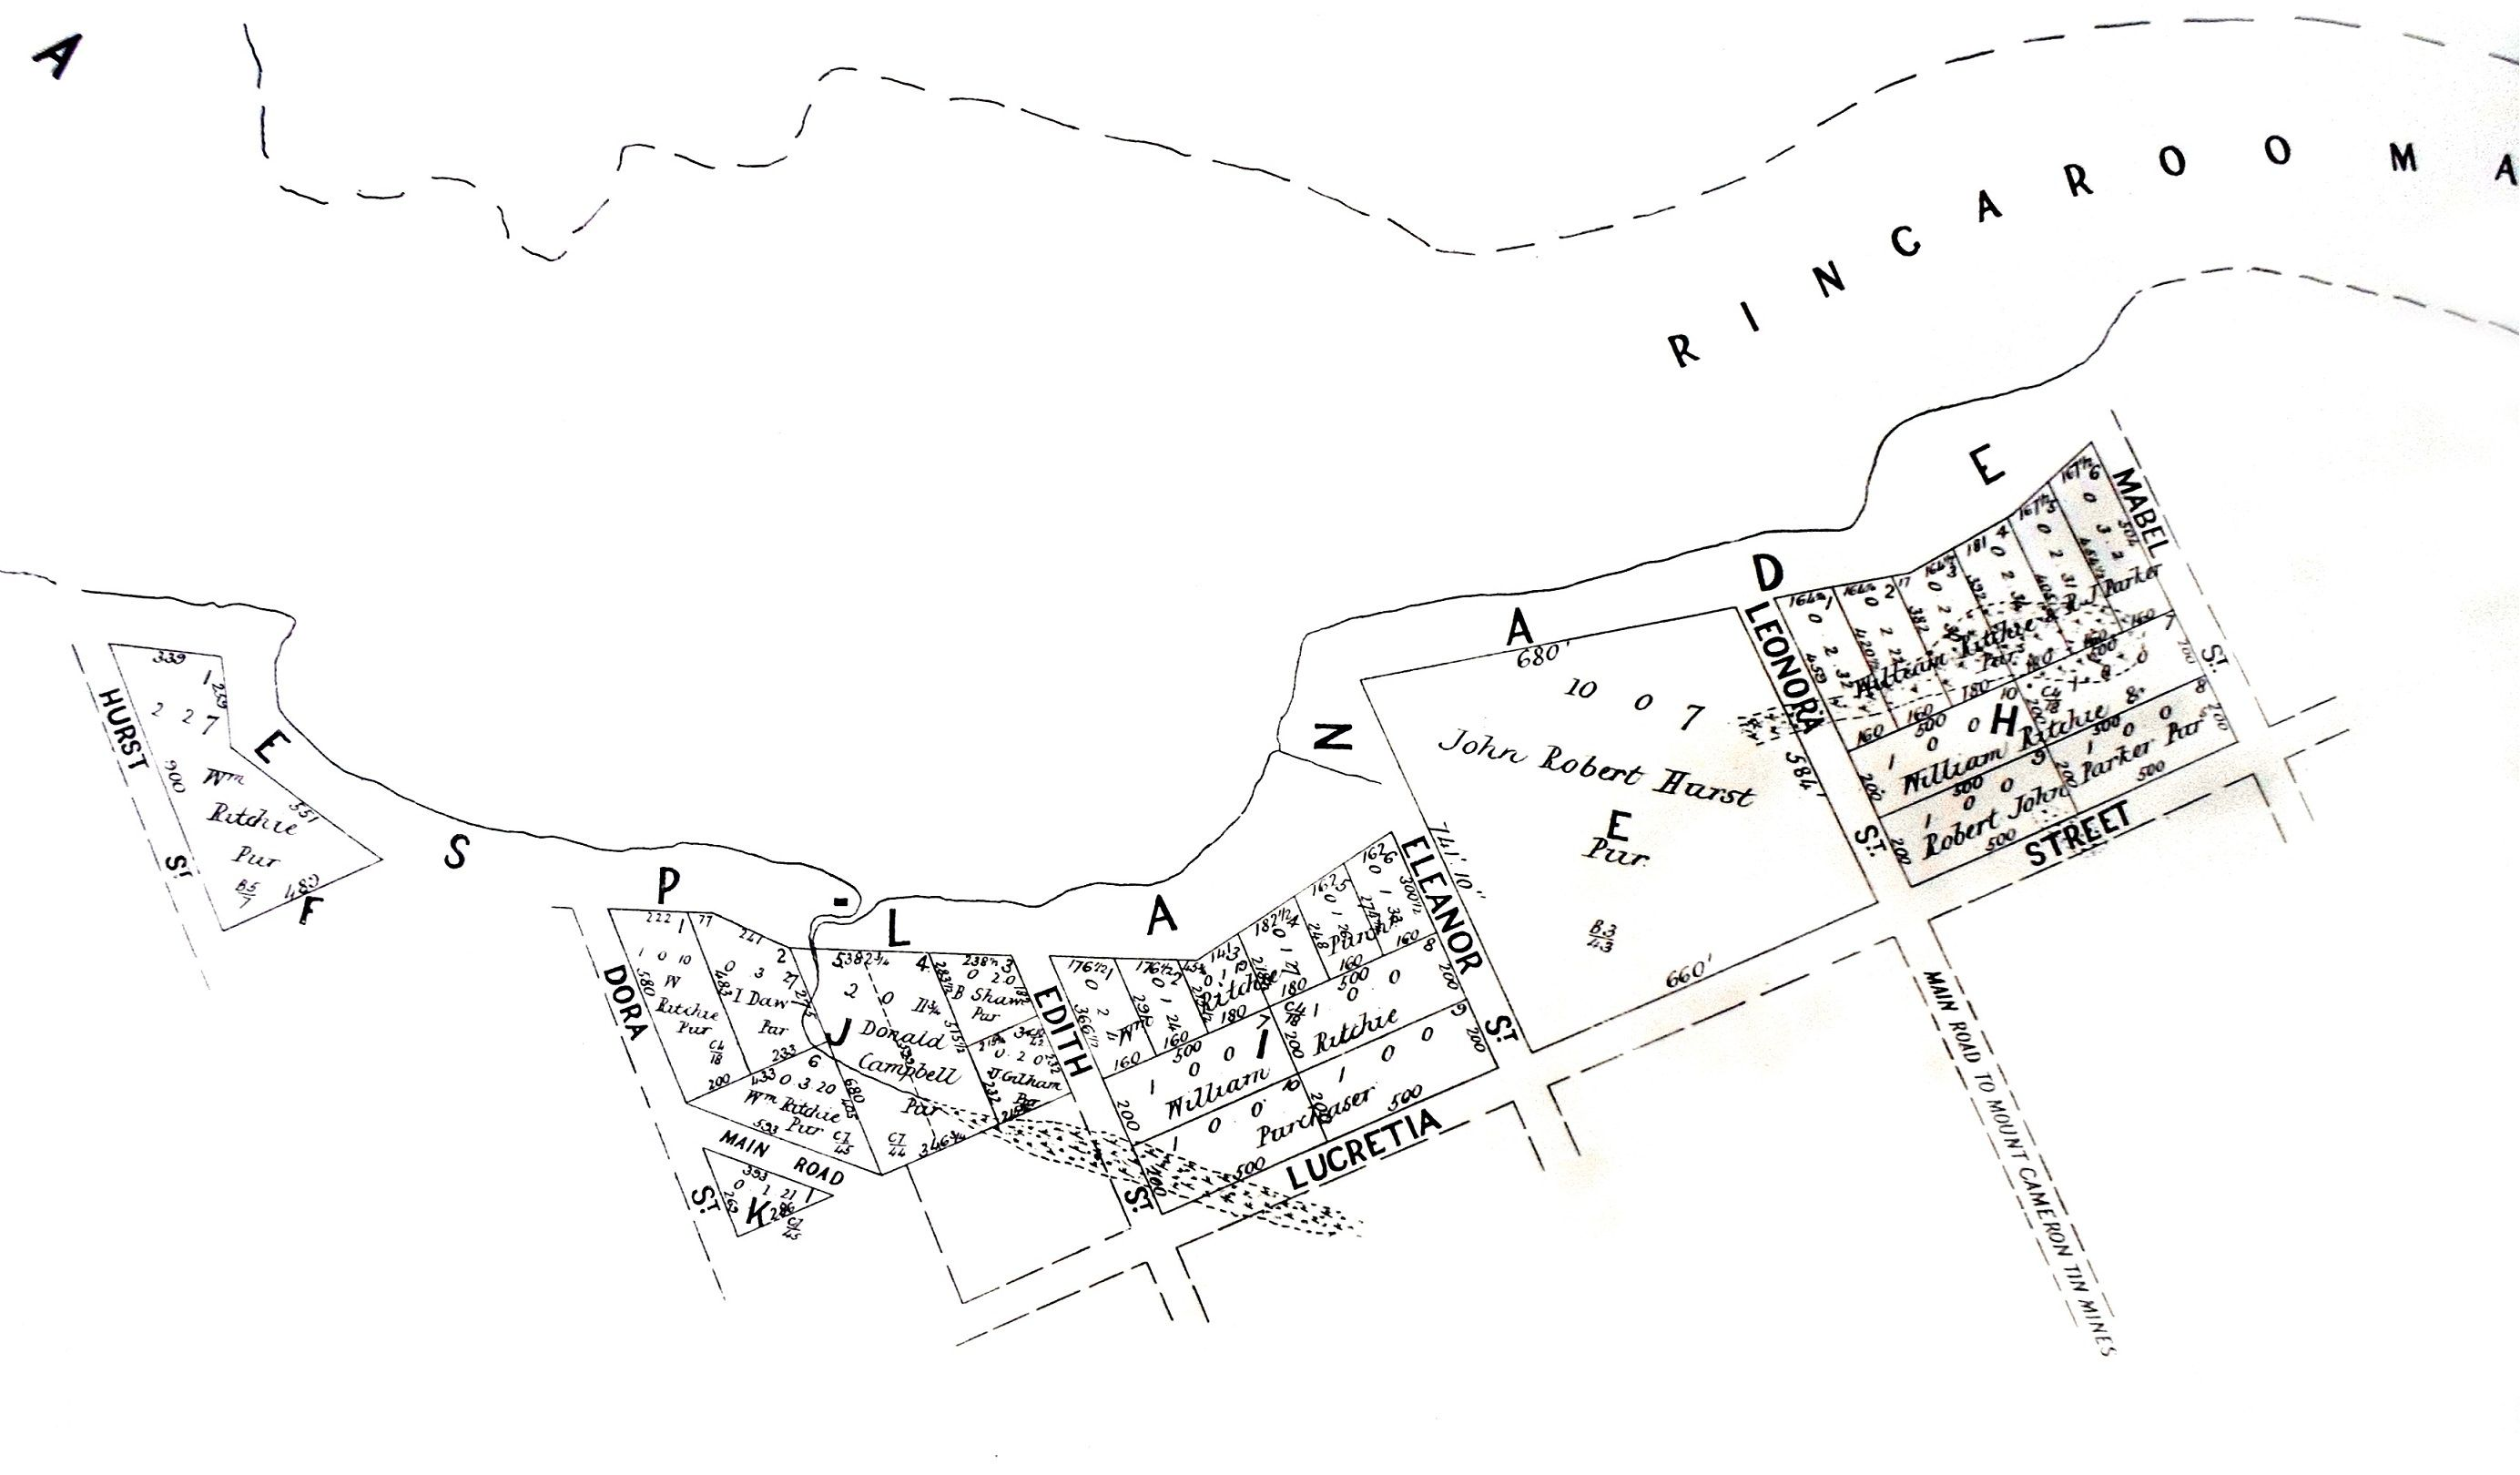 Late 1800s plan of the port town (now ghost town) of